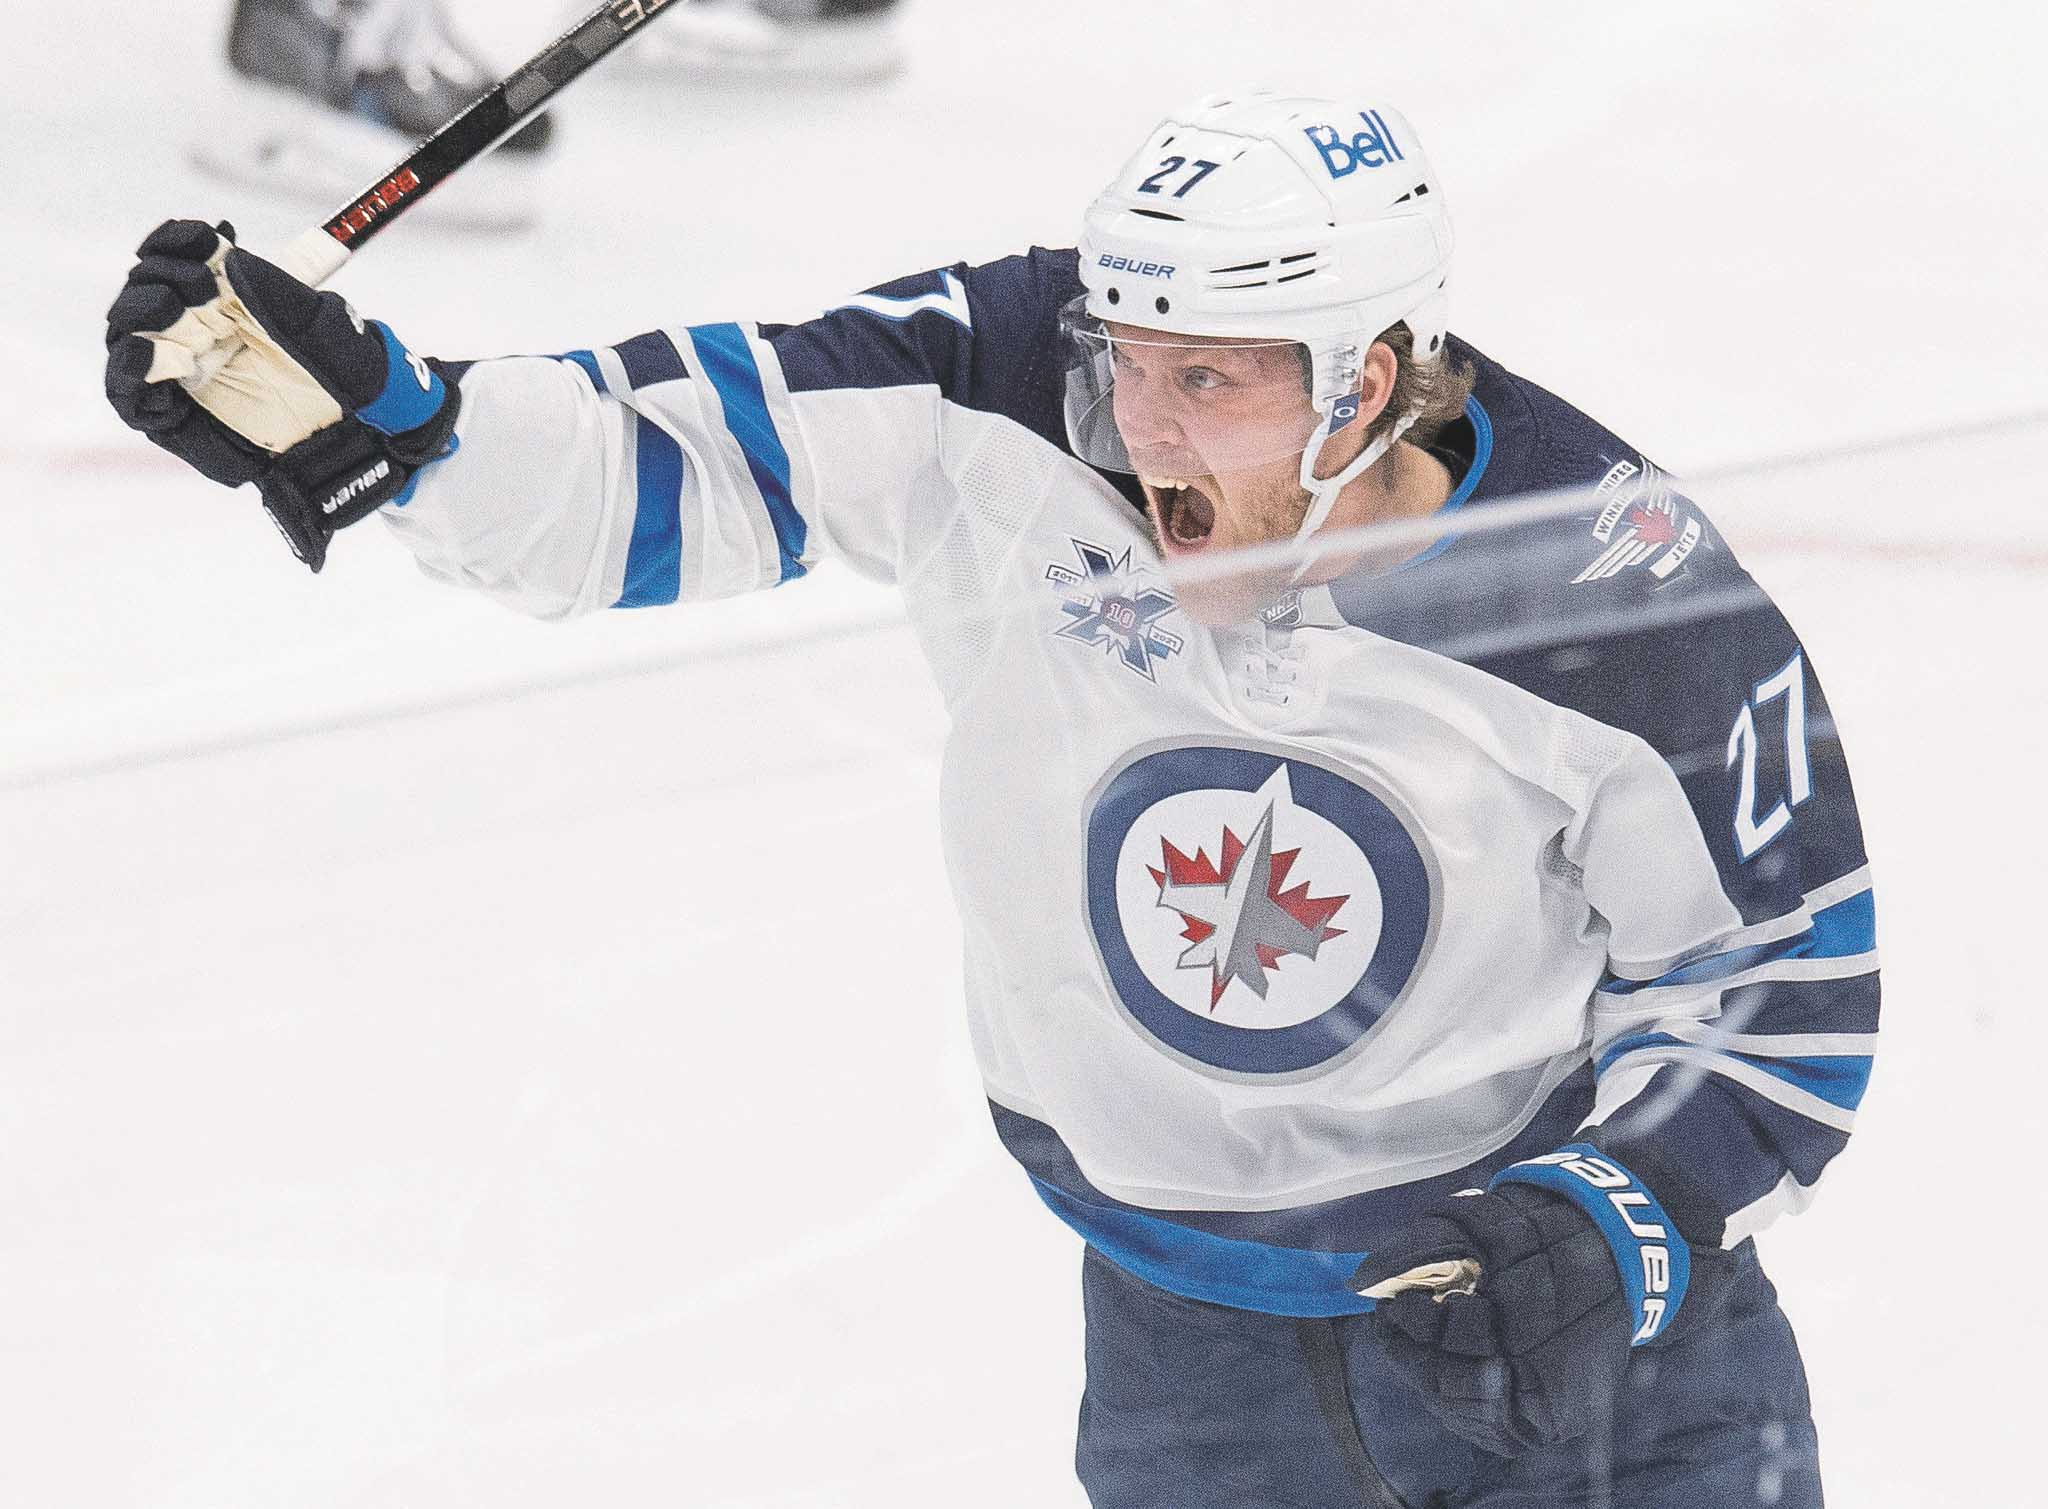 Ehlers celebrates his goal during the third period against the Toronto Maple Leafs in Toronto  Thursday.